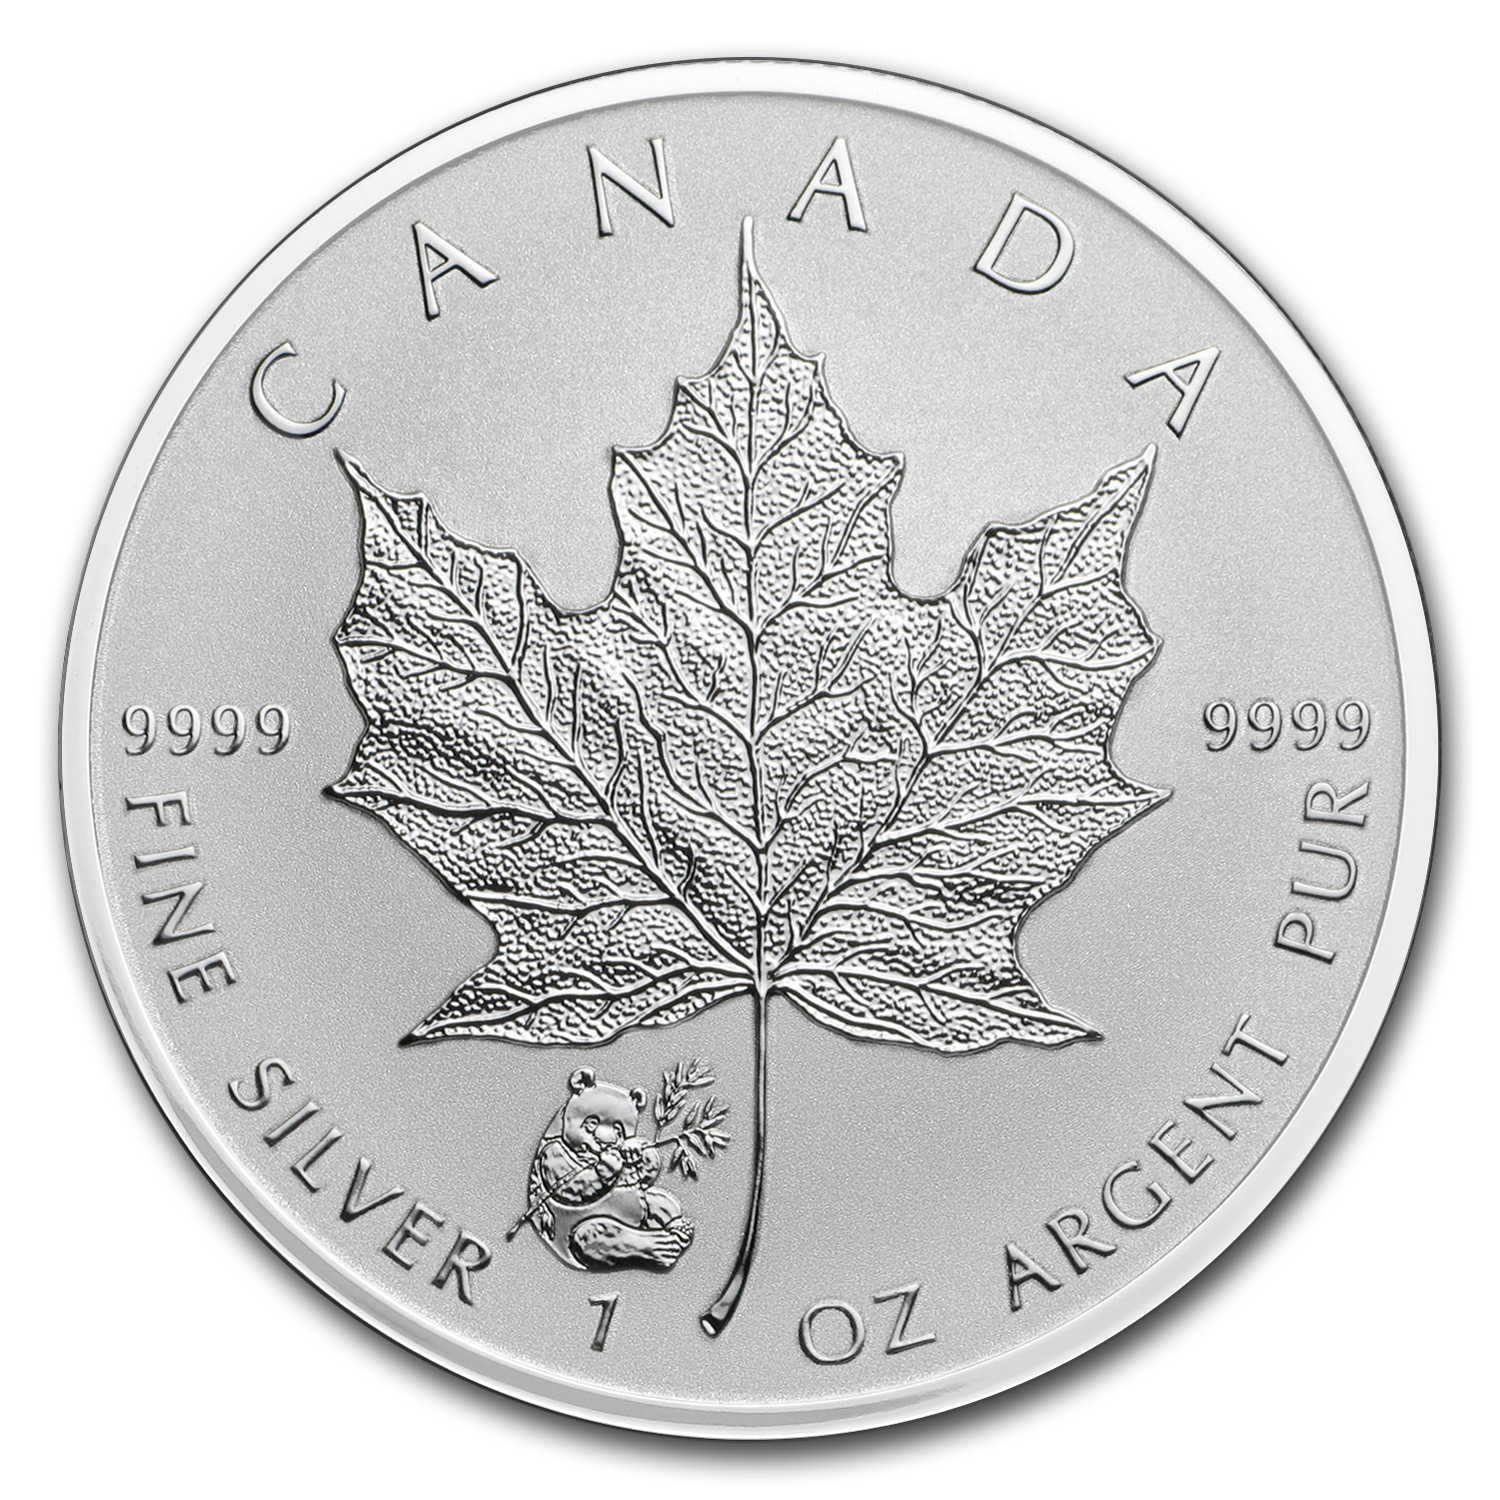 2016 Canada 1 oz Silver Maple Leaf Panda Privy BU